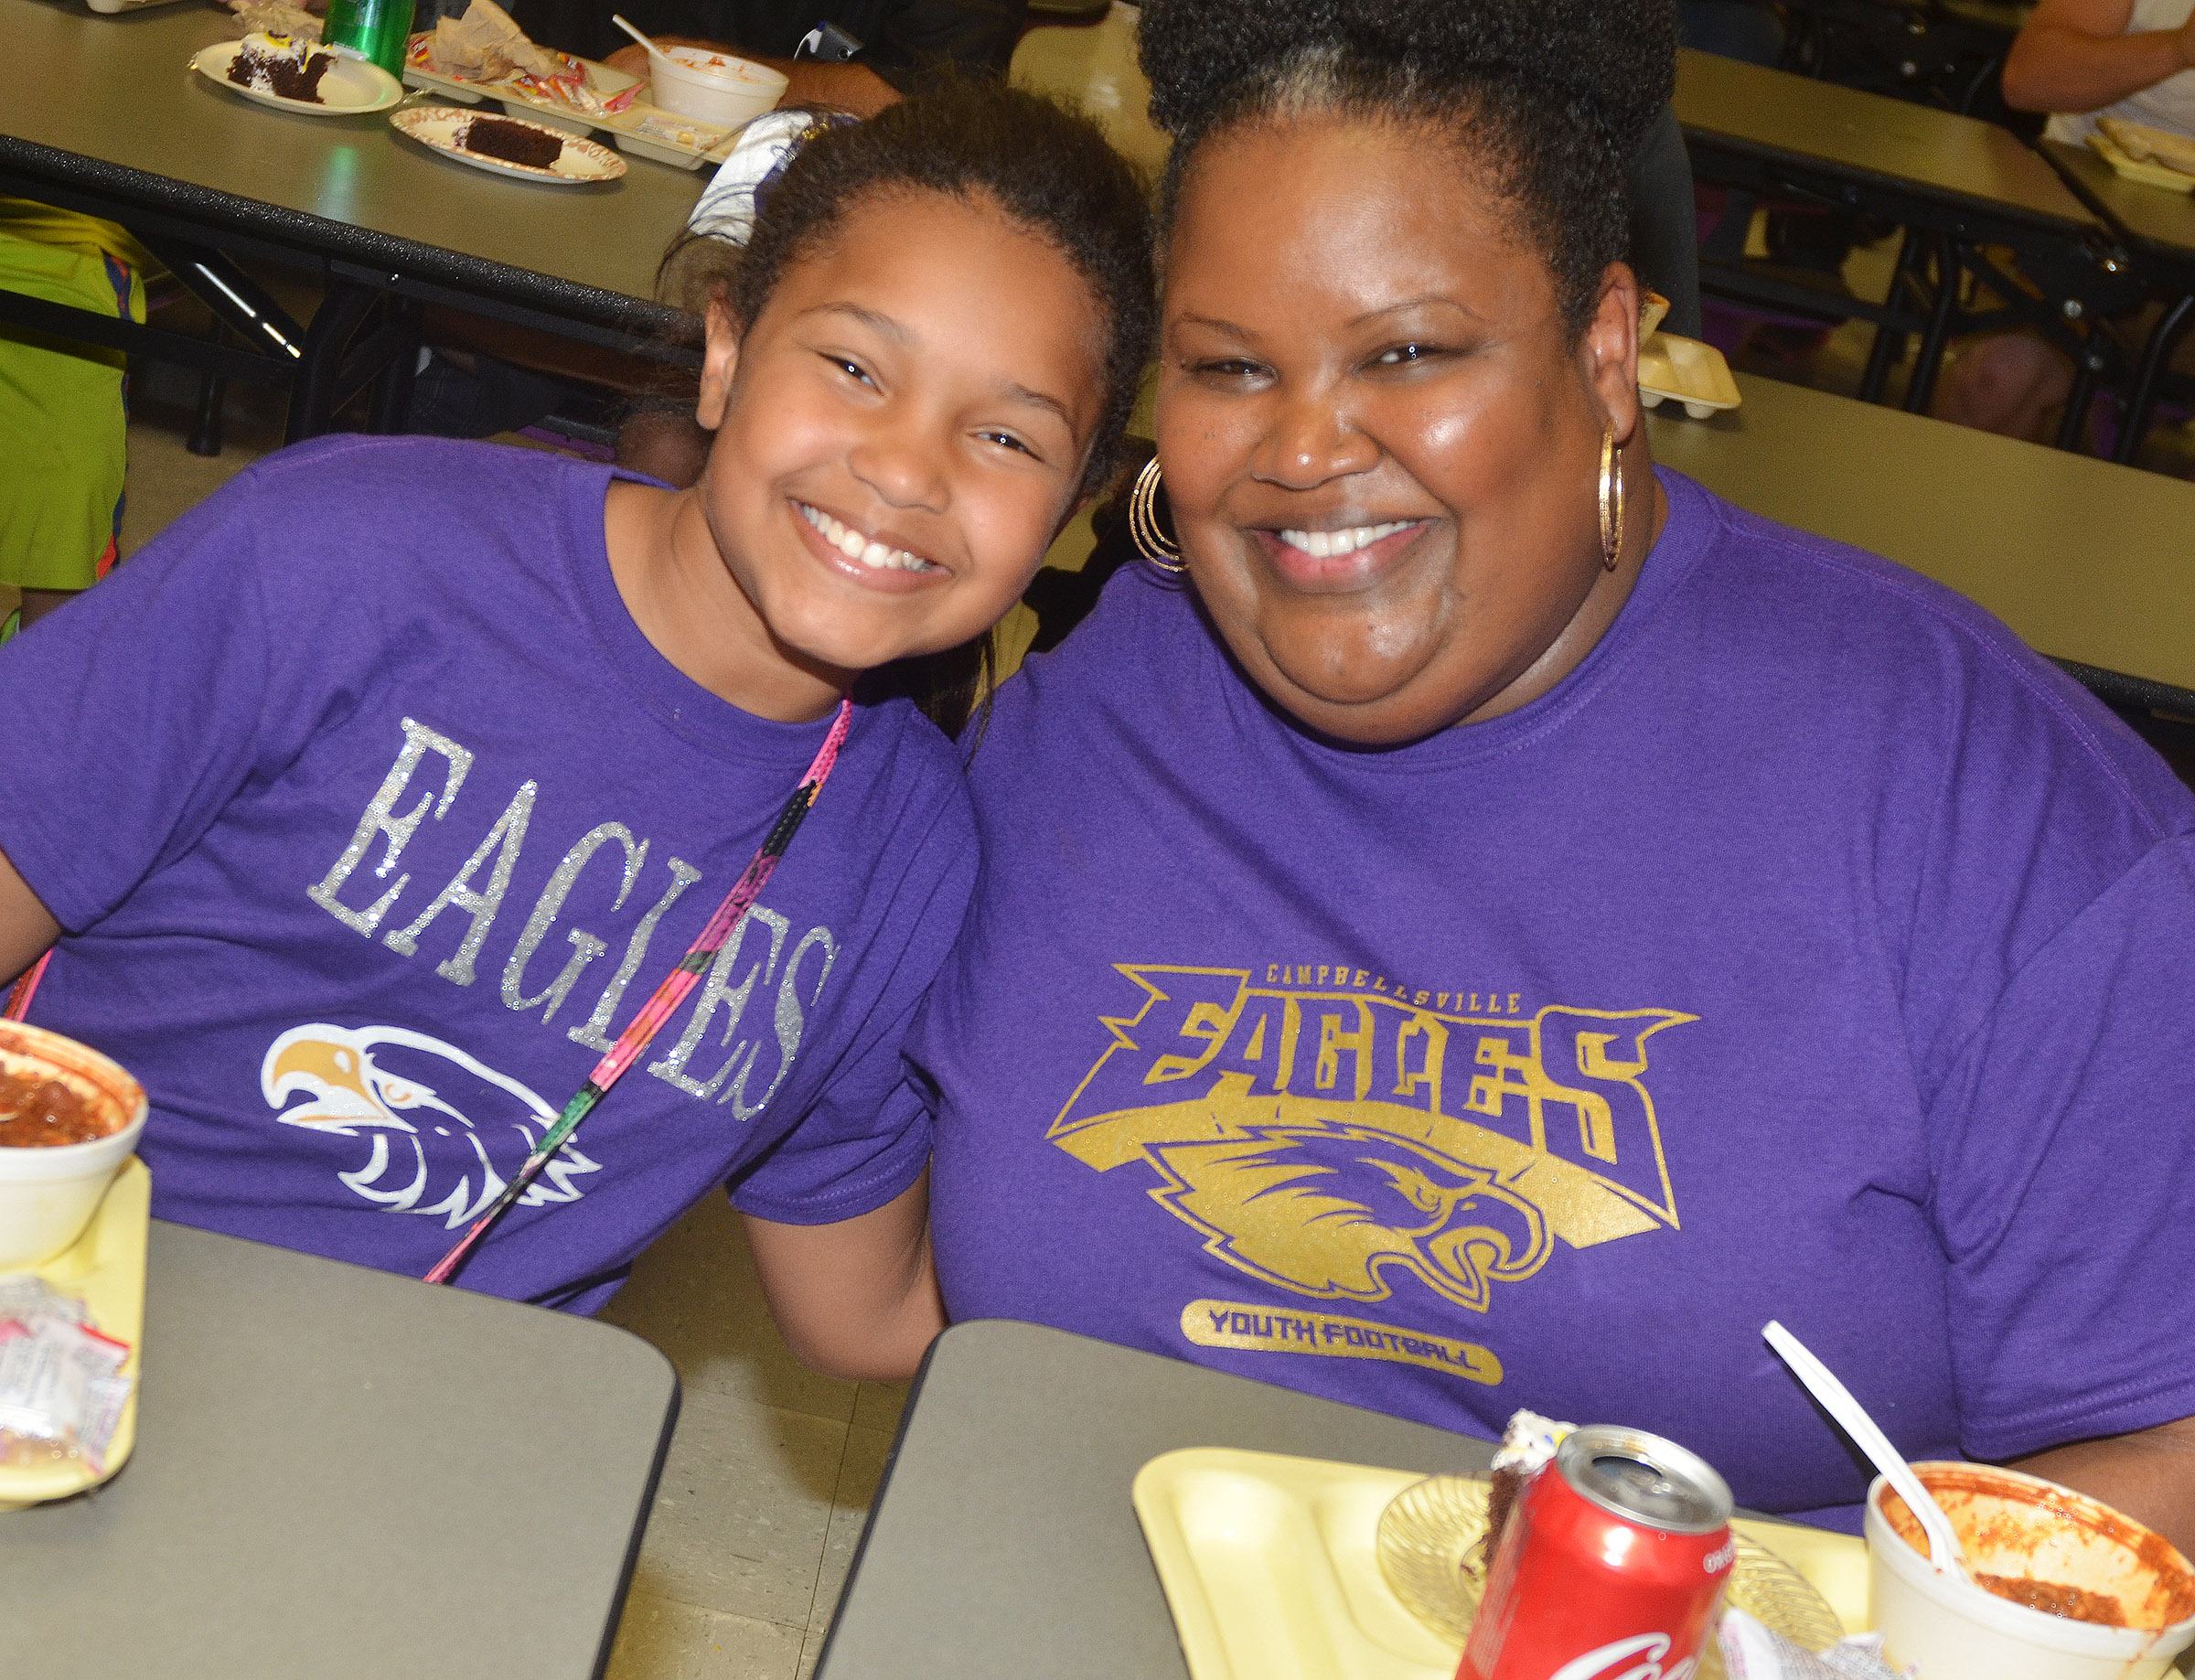 CES fifth-grader Jaclyn Jackson and her mother, Chanelle, smile as they enjoy chili.